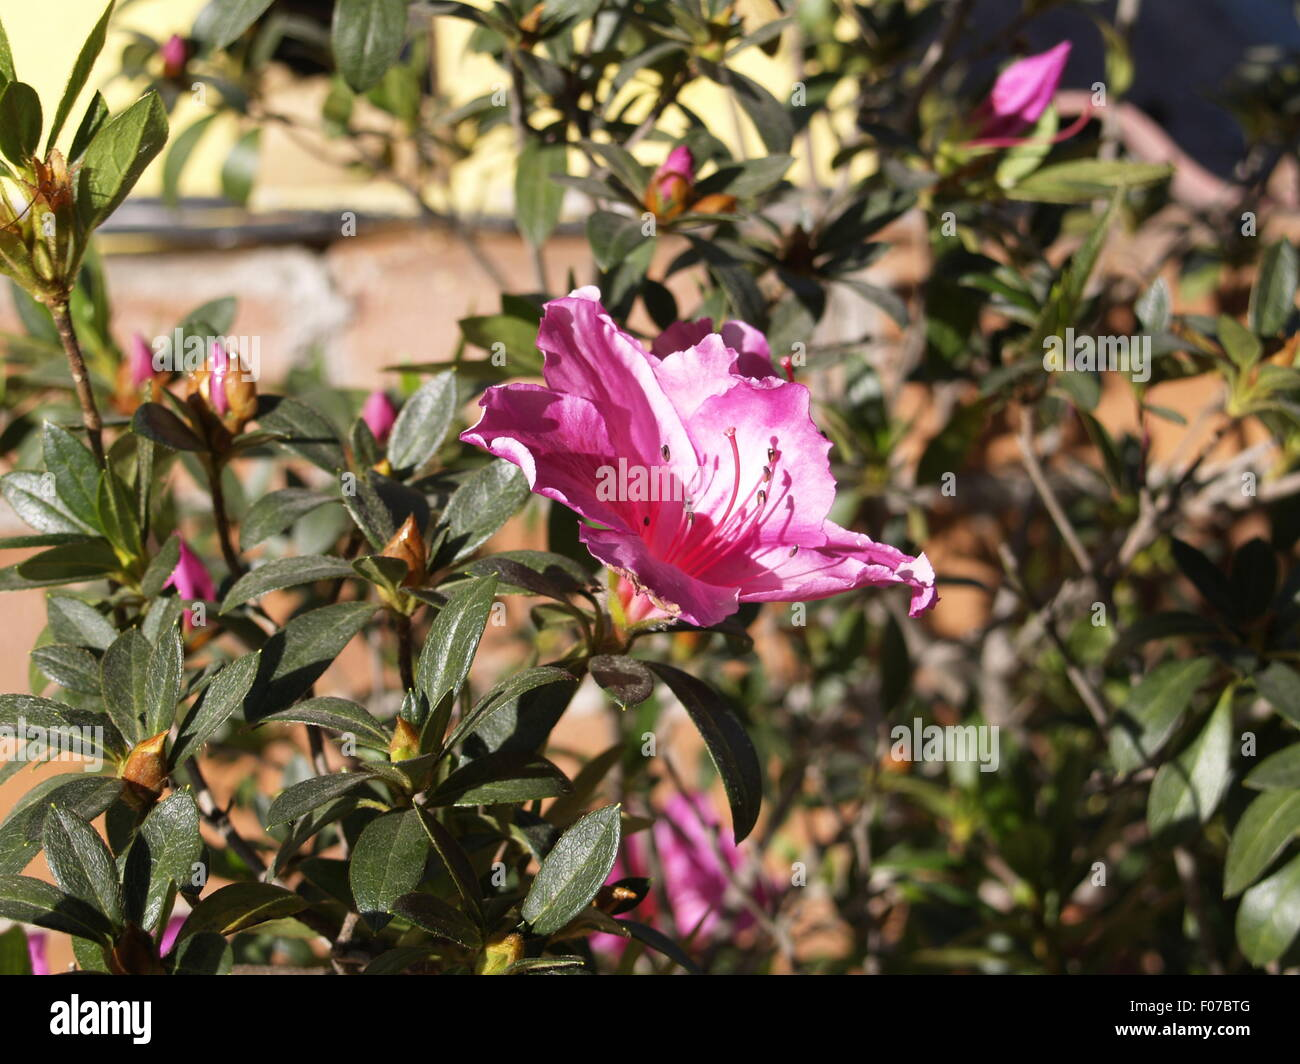 Large pink flower with bush in background stock photo 86214816 alamy large pink flower with bush in background mightylinksfo